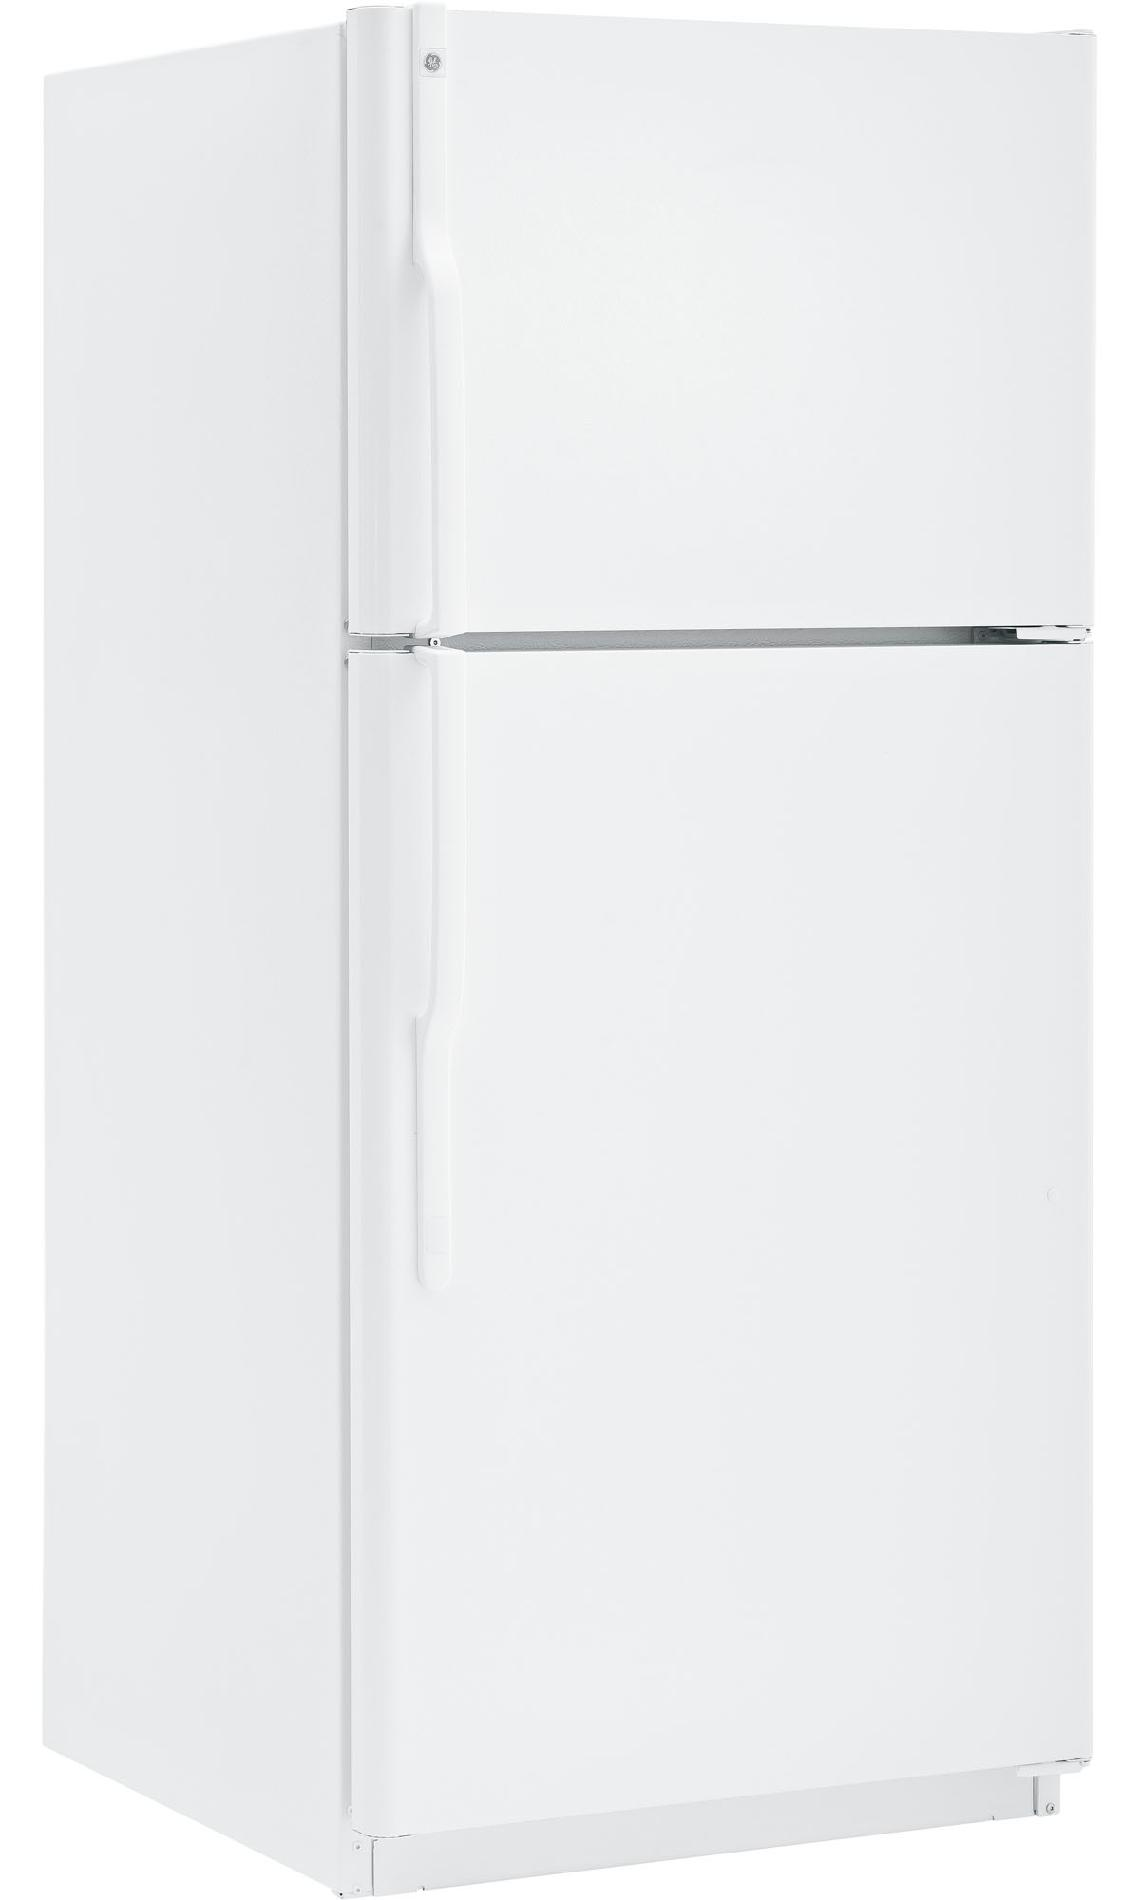 GE 18.0 cu. ft. Top-Freezer Refrigerator  - White